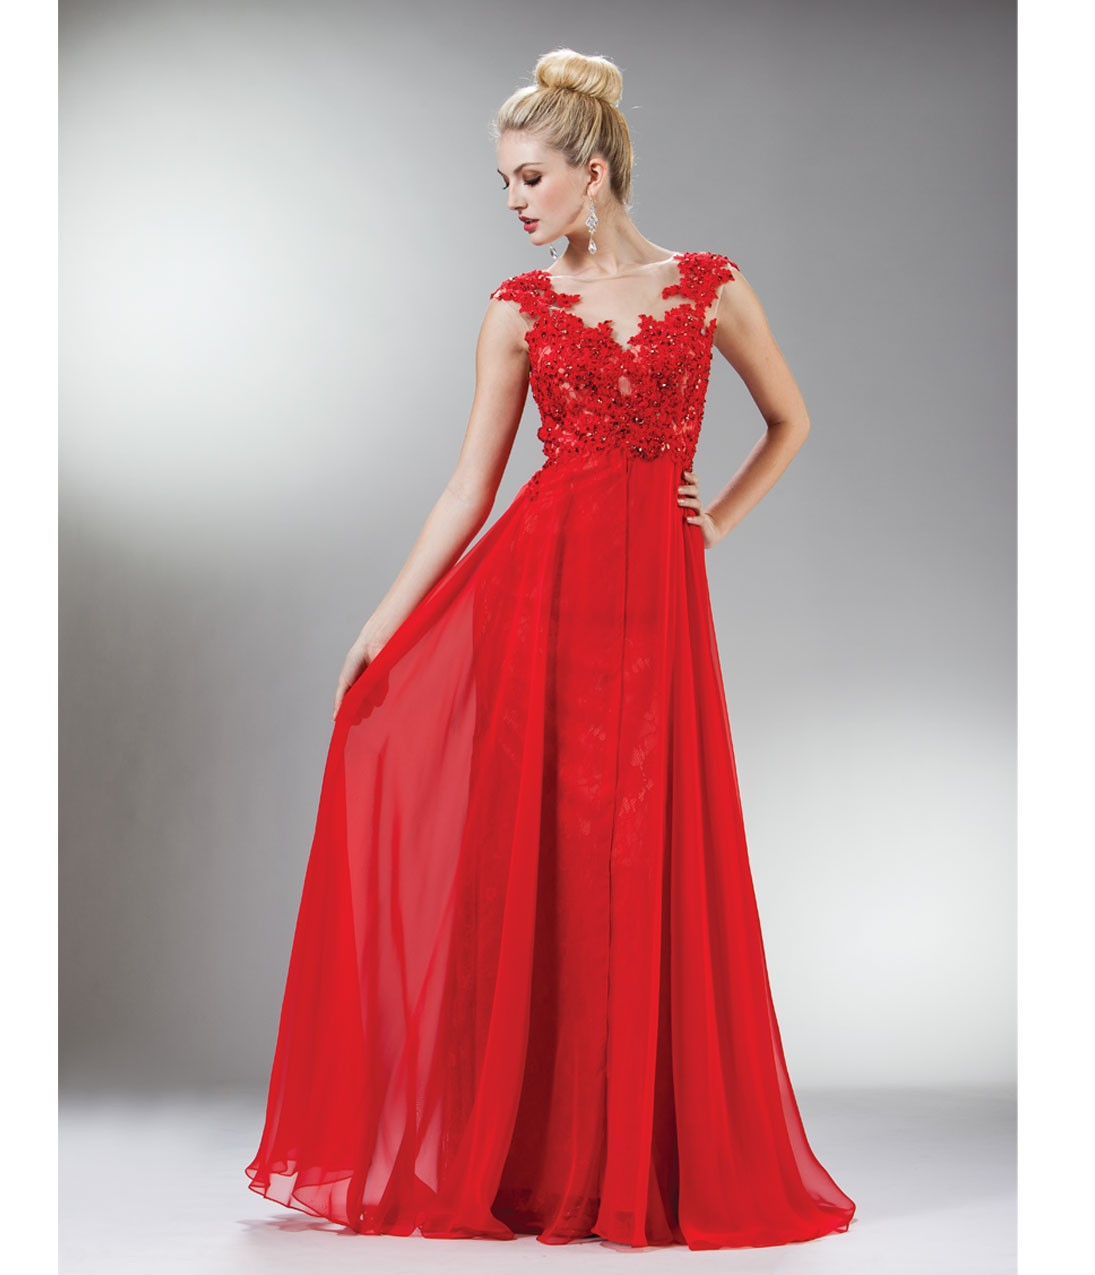 Prom_Dresses-Red_Beaded_Lace_Mesh_Cap_Sleeve_Long_Dress